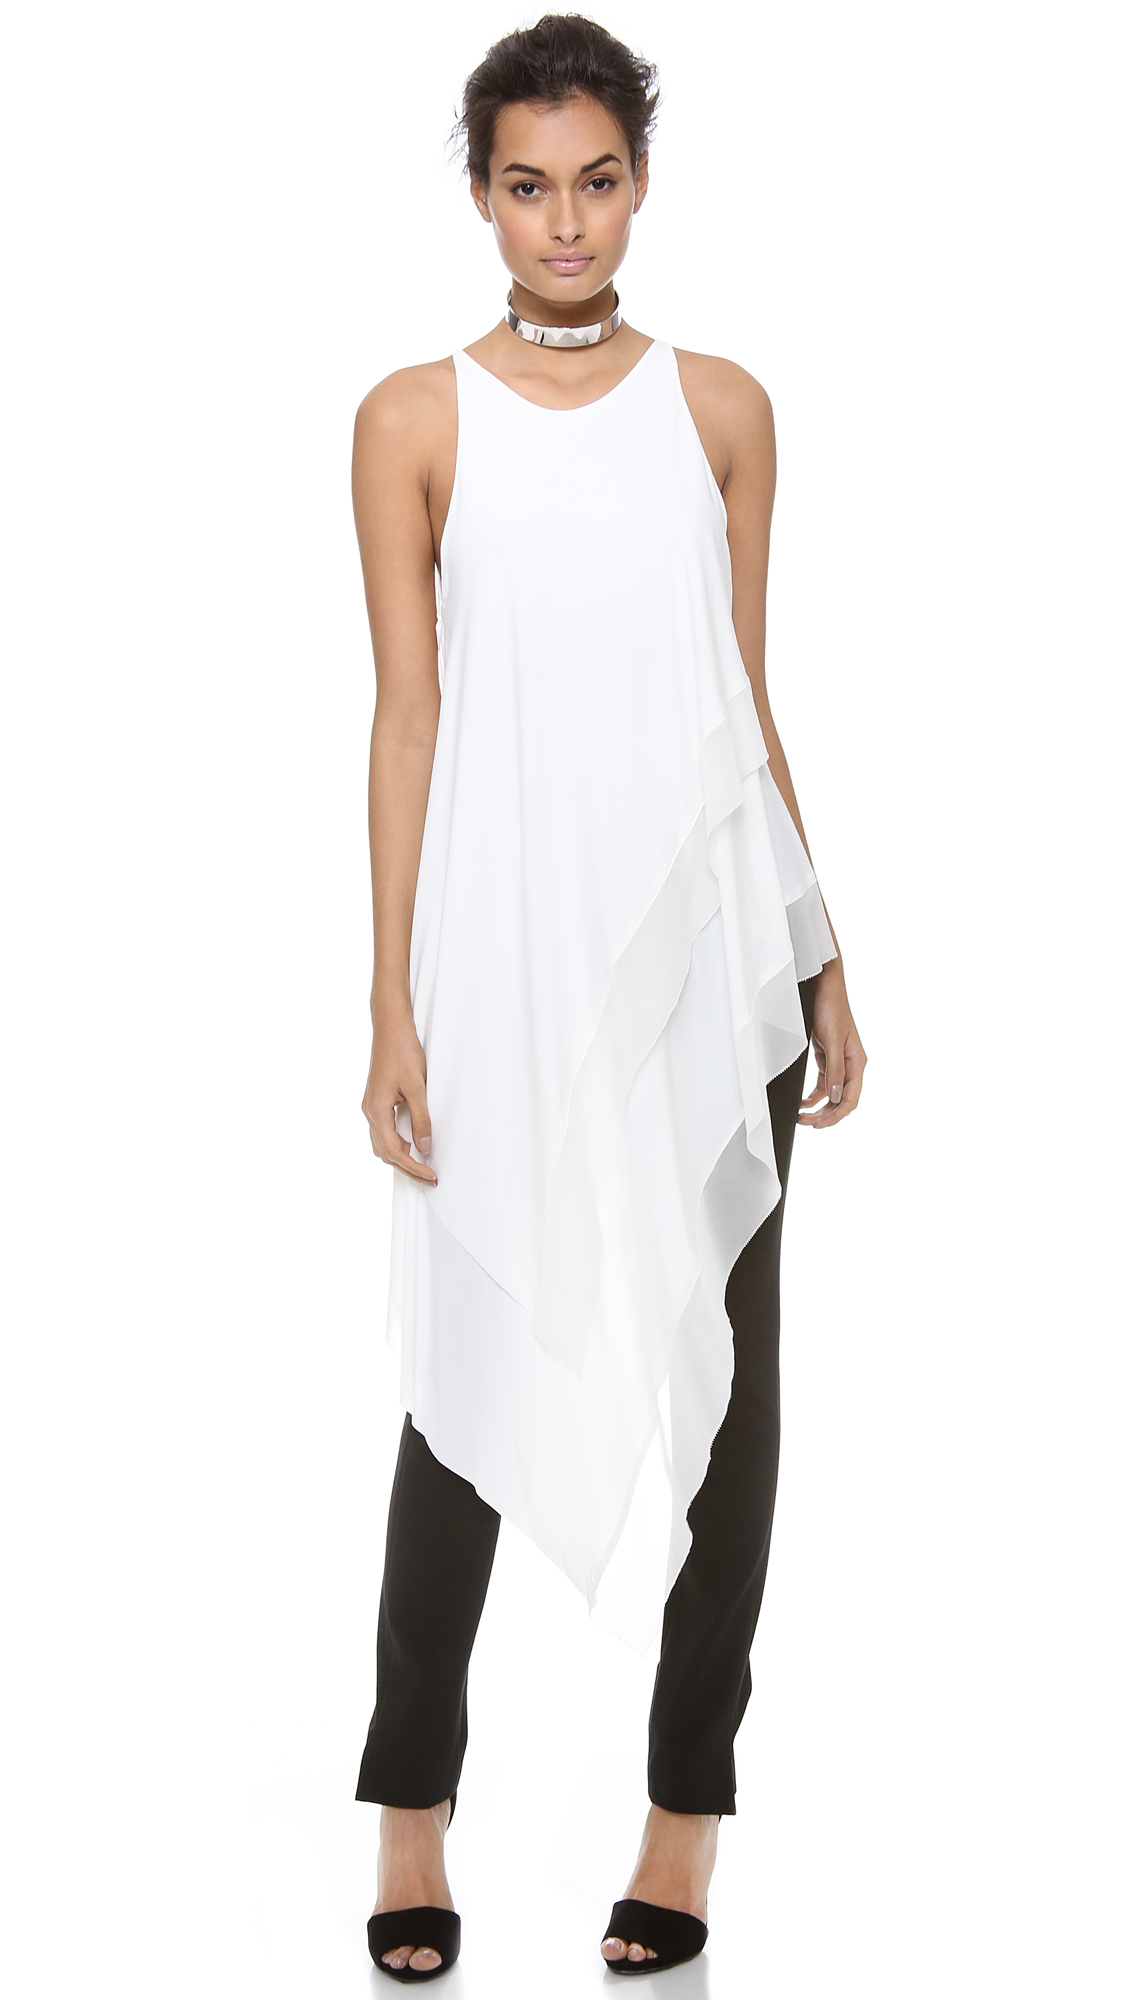 lyst donna karan sleeveless asymmetric top in white. Black Bedroom Furniture Sets. Home Design Ideas